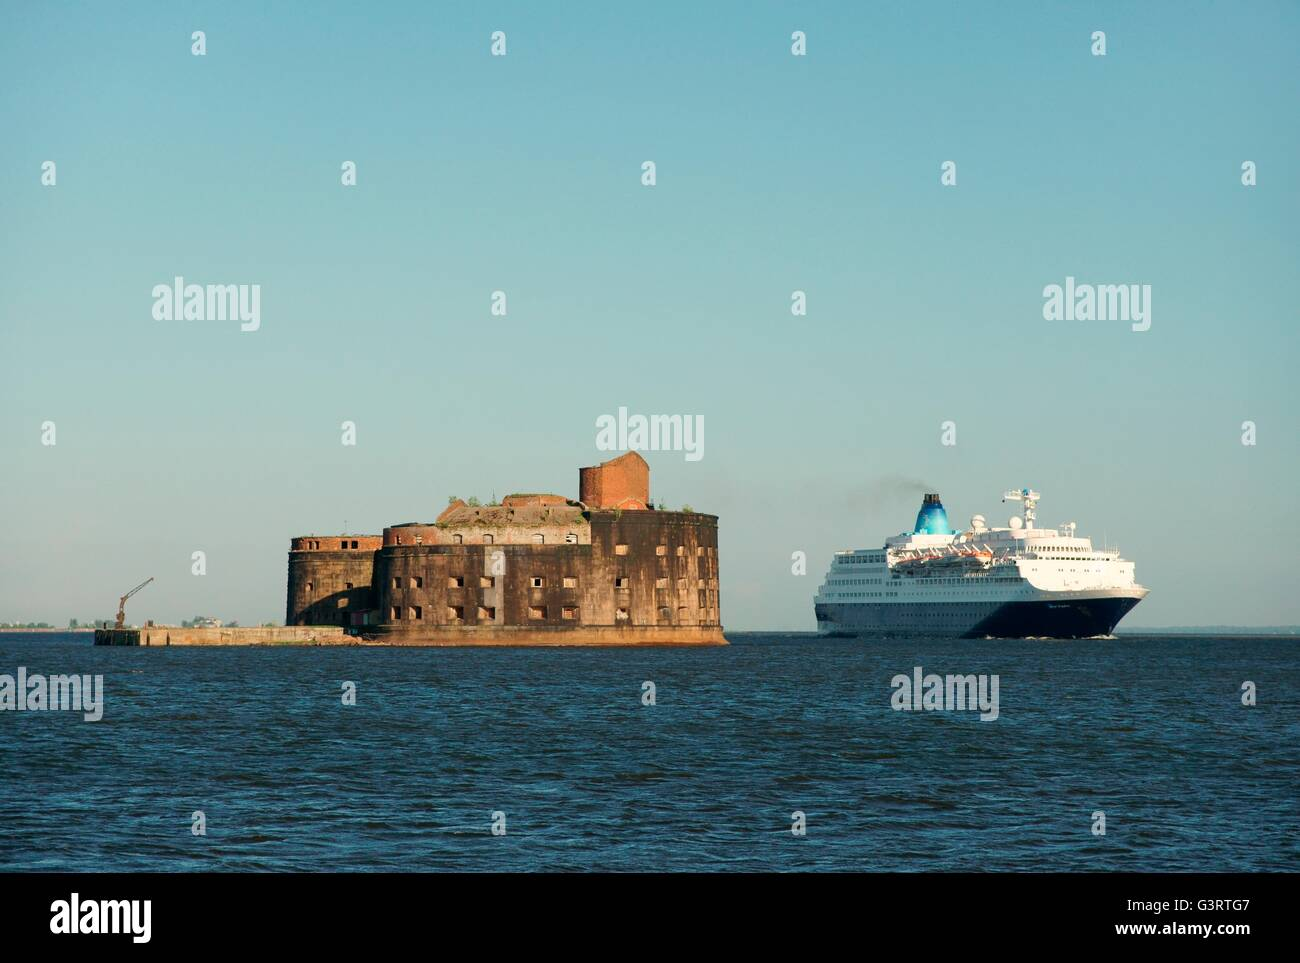 Russia. Fort Alexander commissioned 1845 at Kronstadt, Gulf of Finland. Cruise ship Saga Sapphire outbound from - Stock Image